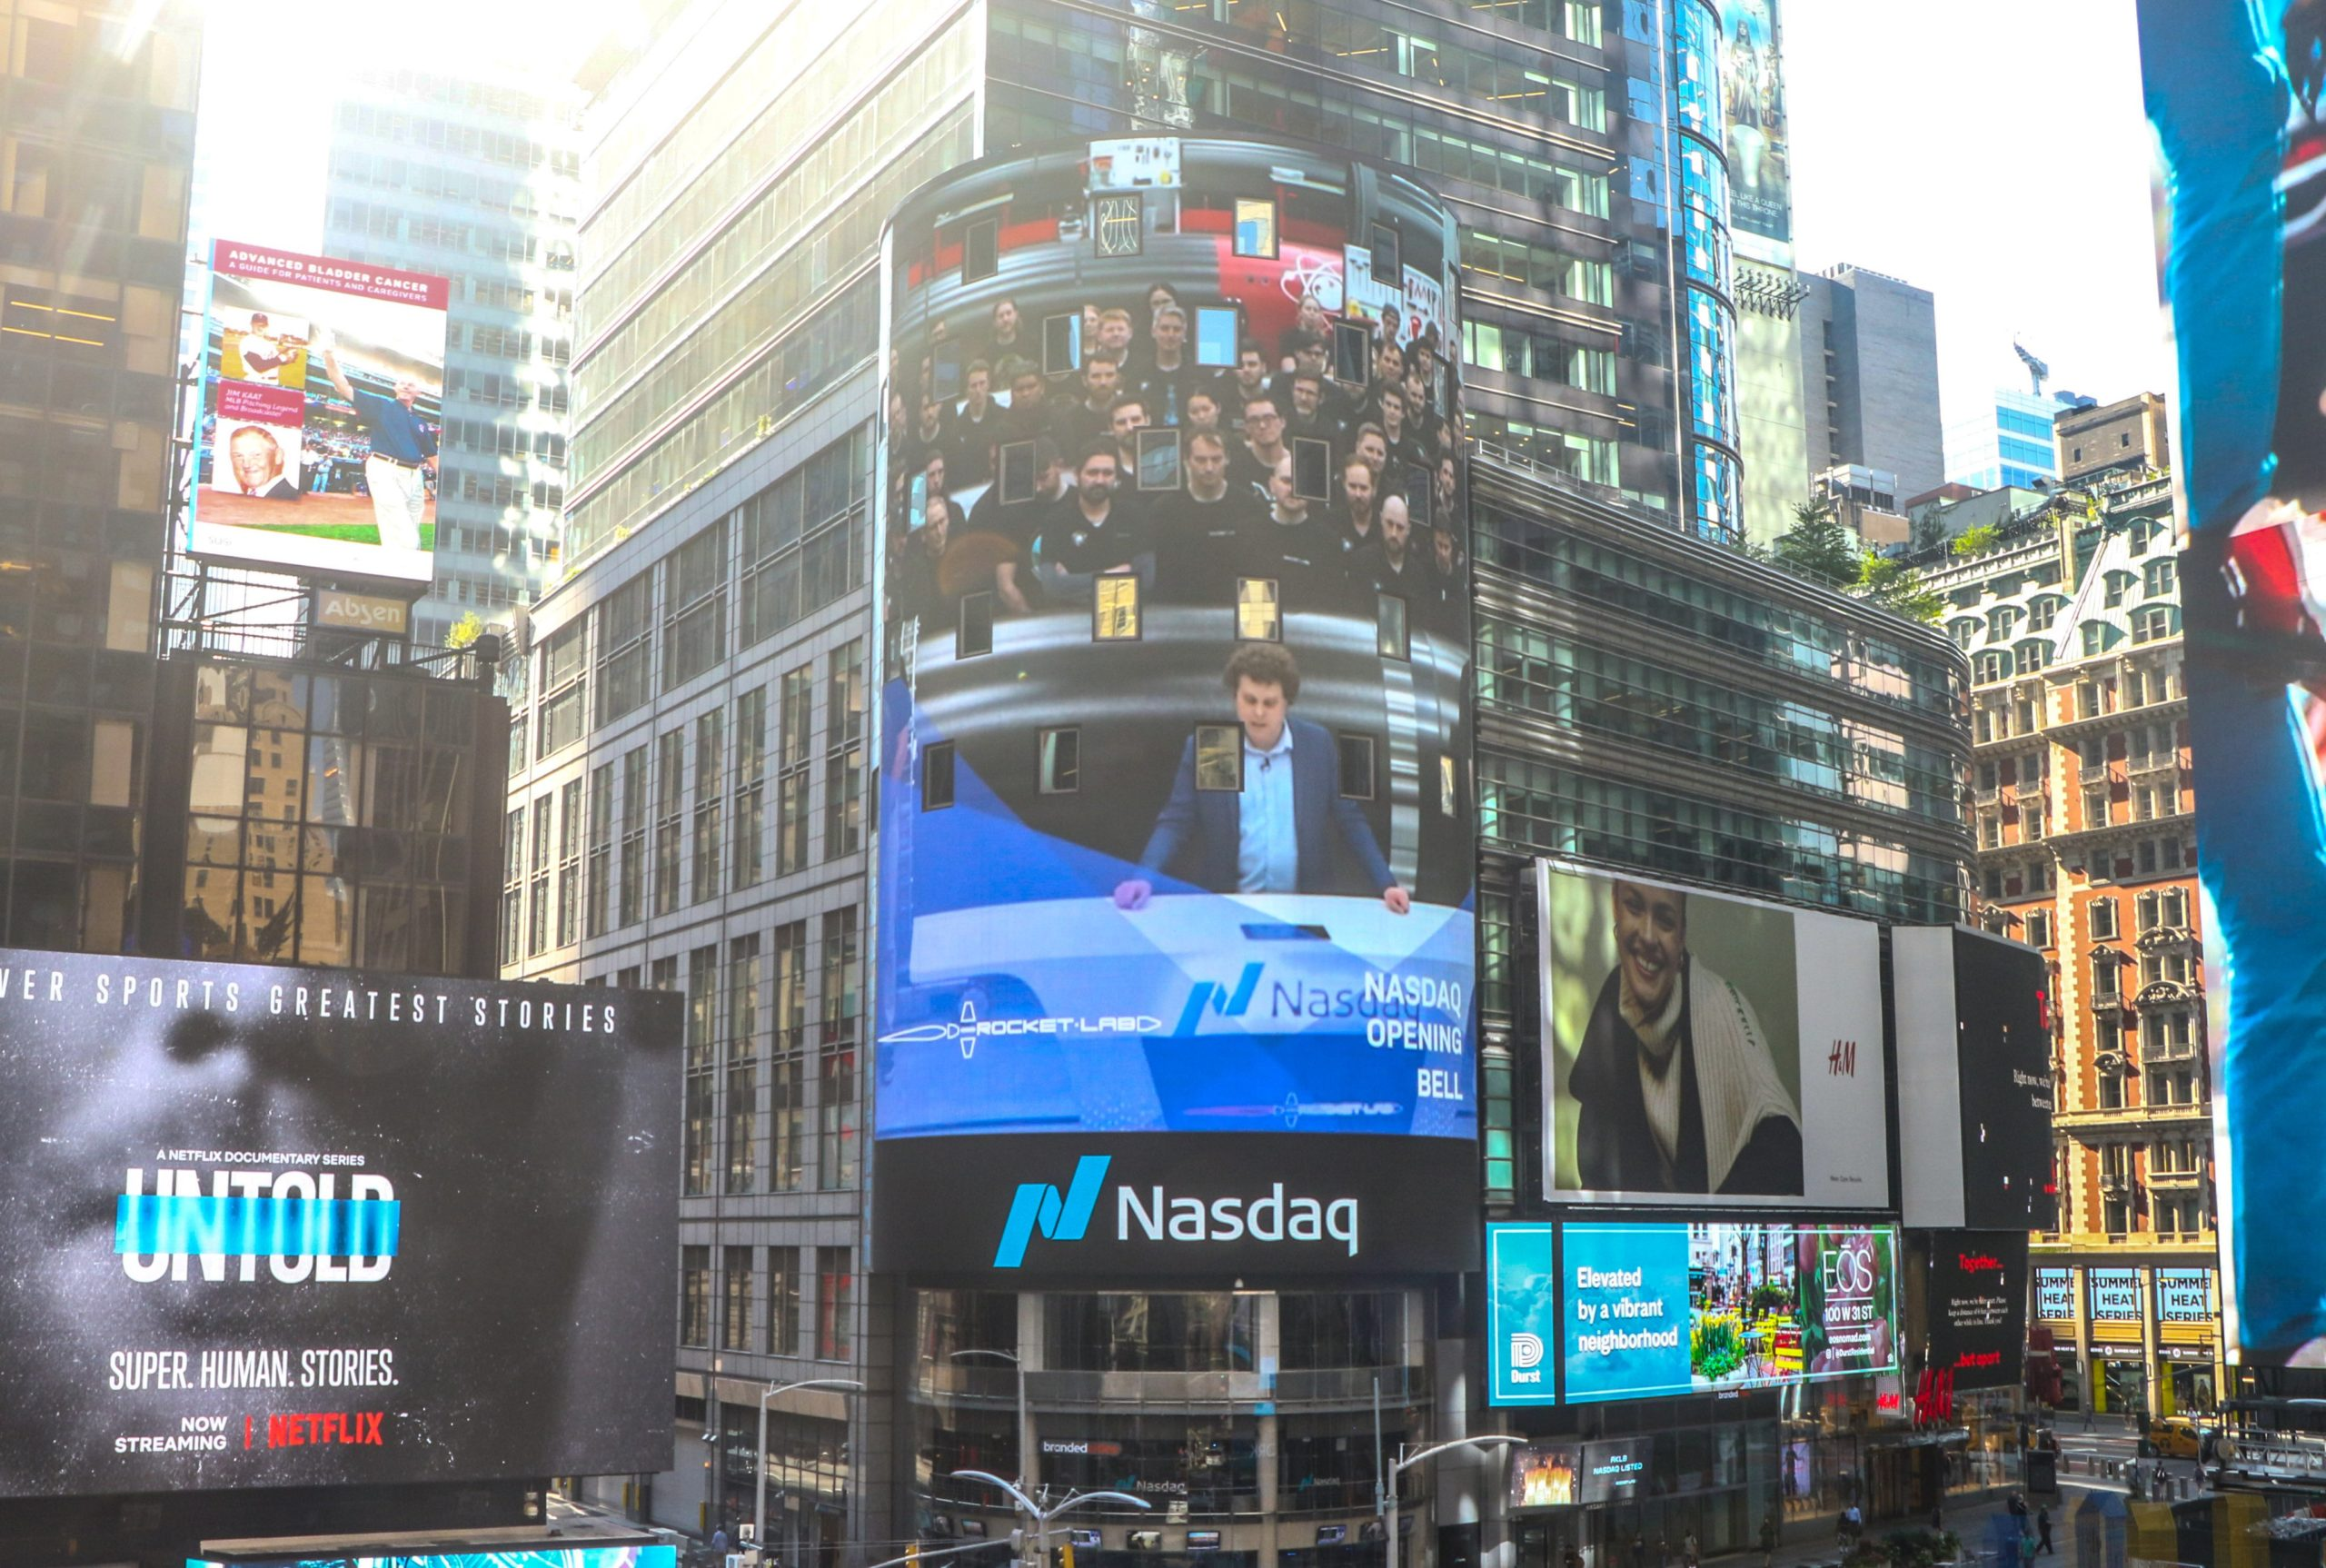 Rocket Lab CEO Peter Beck seen on the LED Nasdaq display at Times Square, New York, on August 25, 2021, as the company goes public.